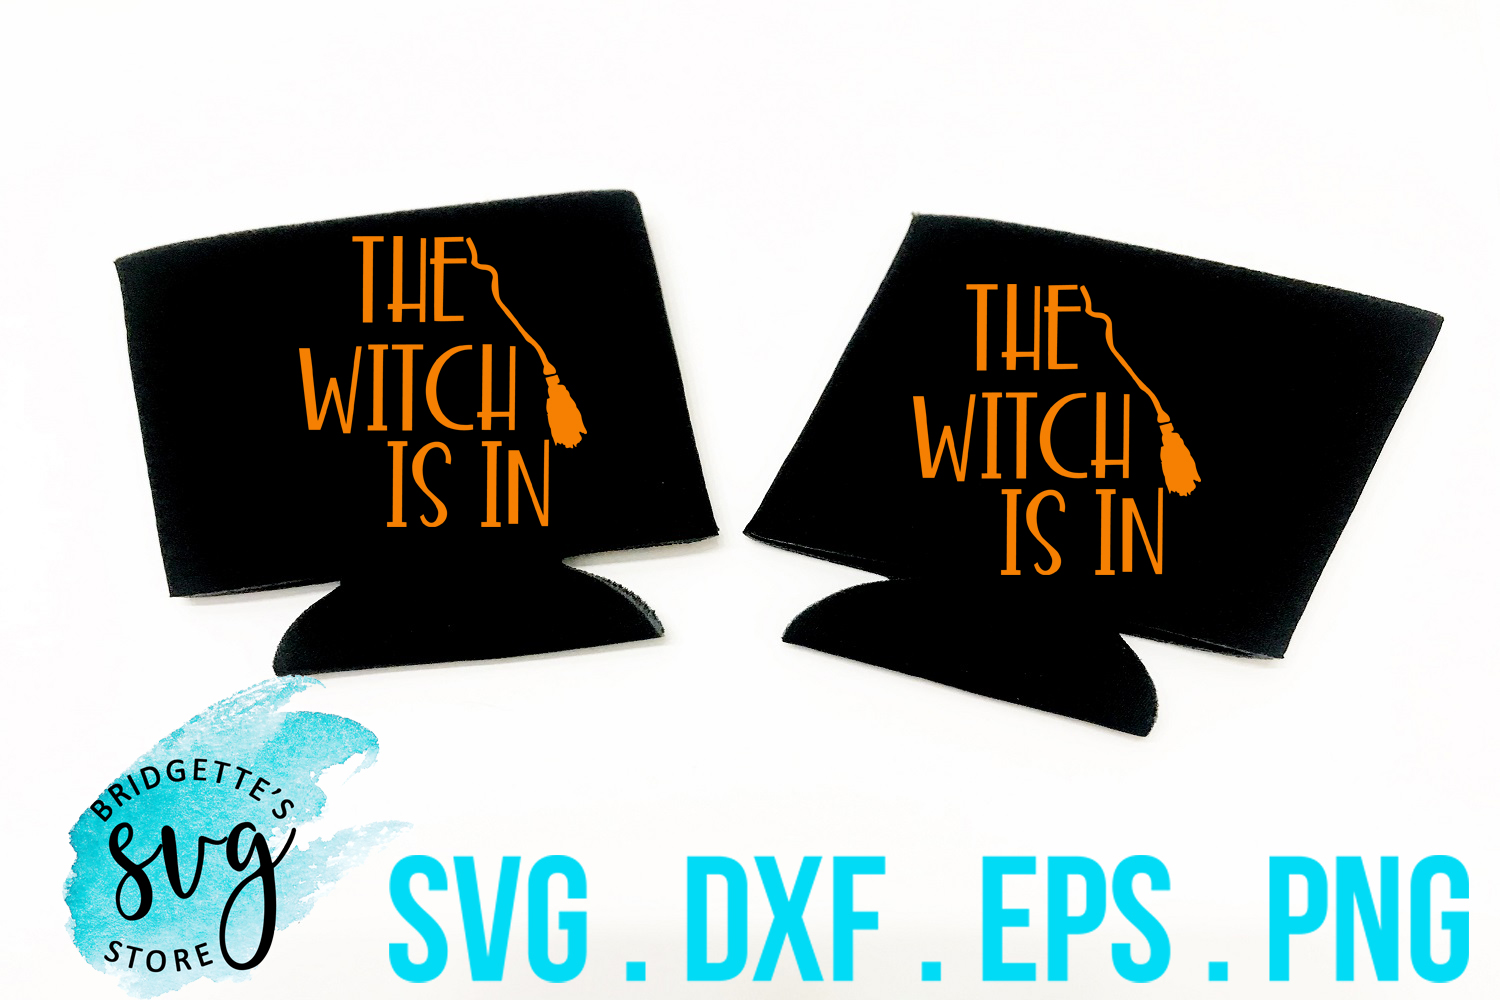 The Witch Is In SVG, DXF, PNG, EPS Cut File example image 1